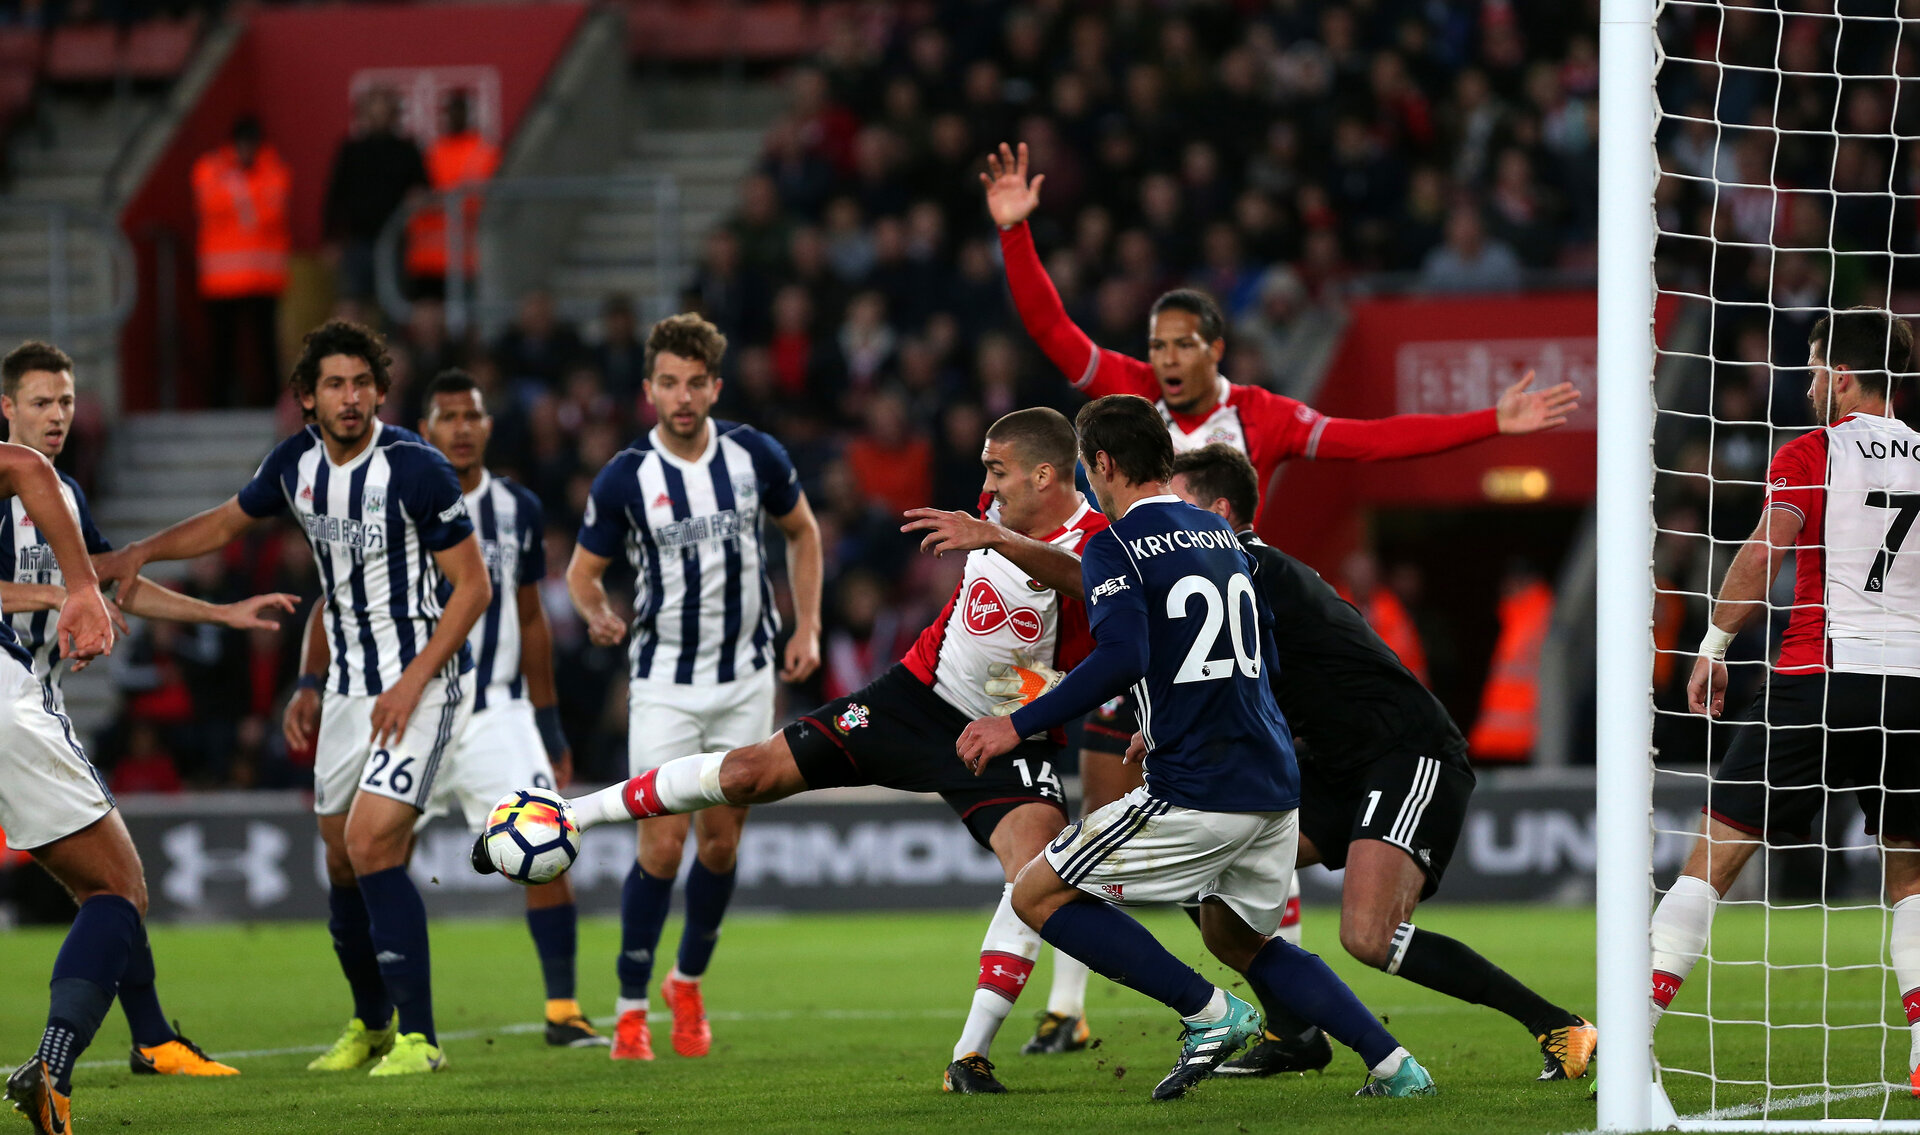 SOUTHAMPTON, ENGLAND - OCTOBER 21: during the Premier League match between Southampton and West Bromwich Albion at St Mary's Stadium on October 21, 2017 in Southampton, England. (Photo by Chris Moorhouse/Southampton FC via Getty Images)